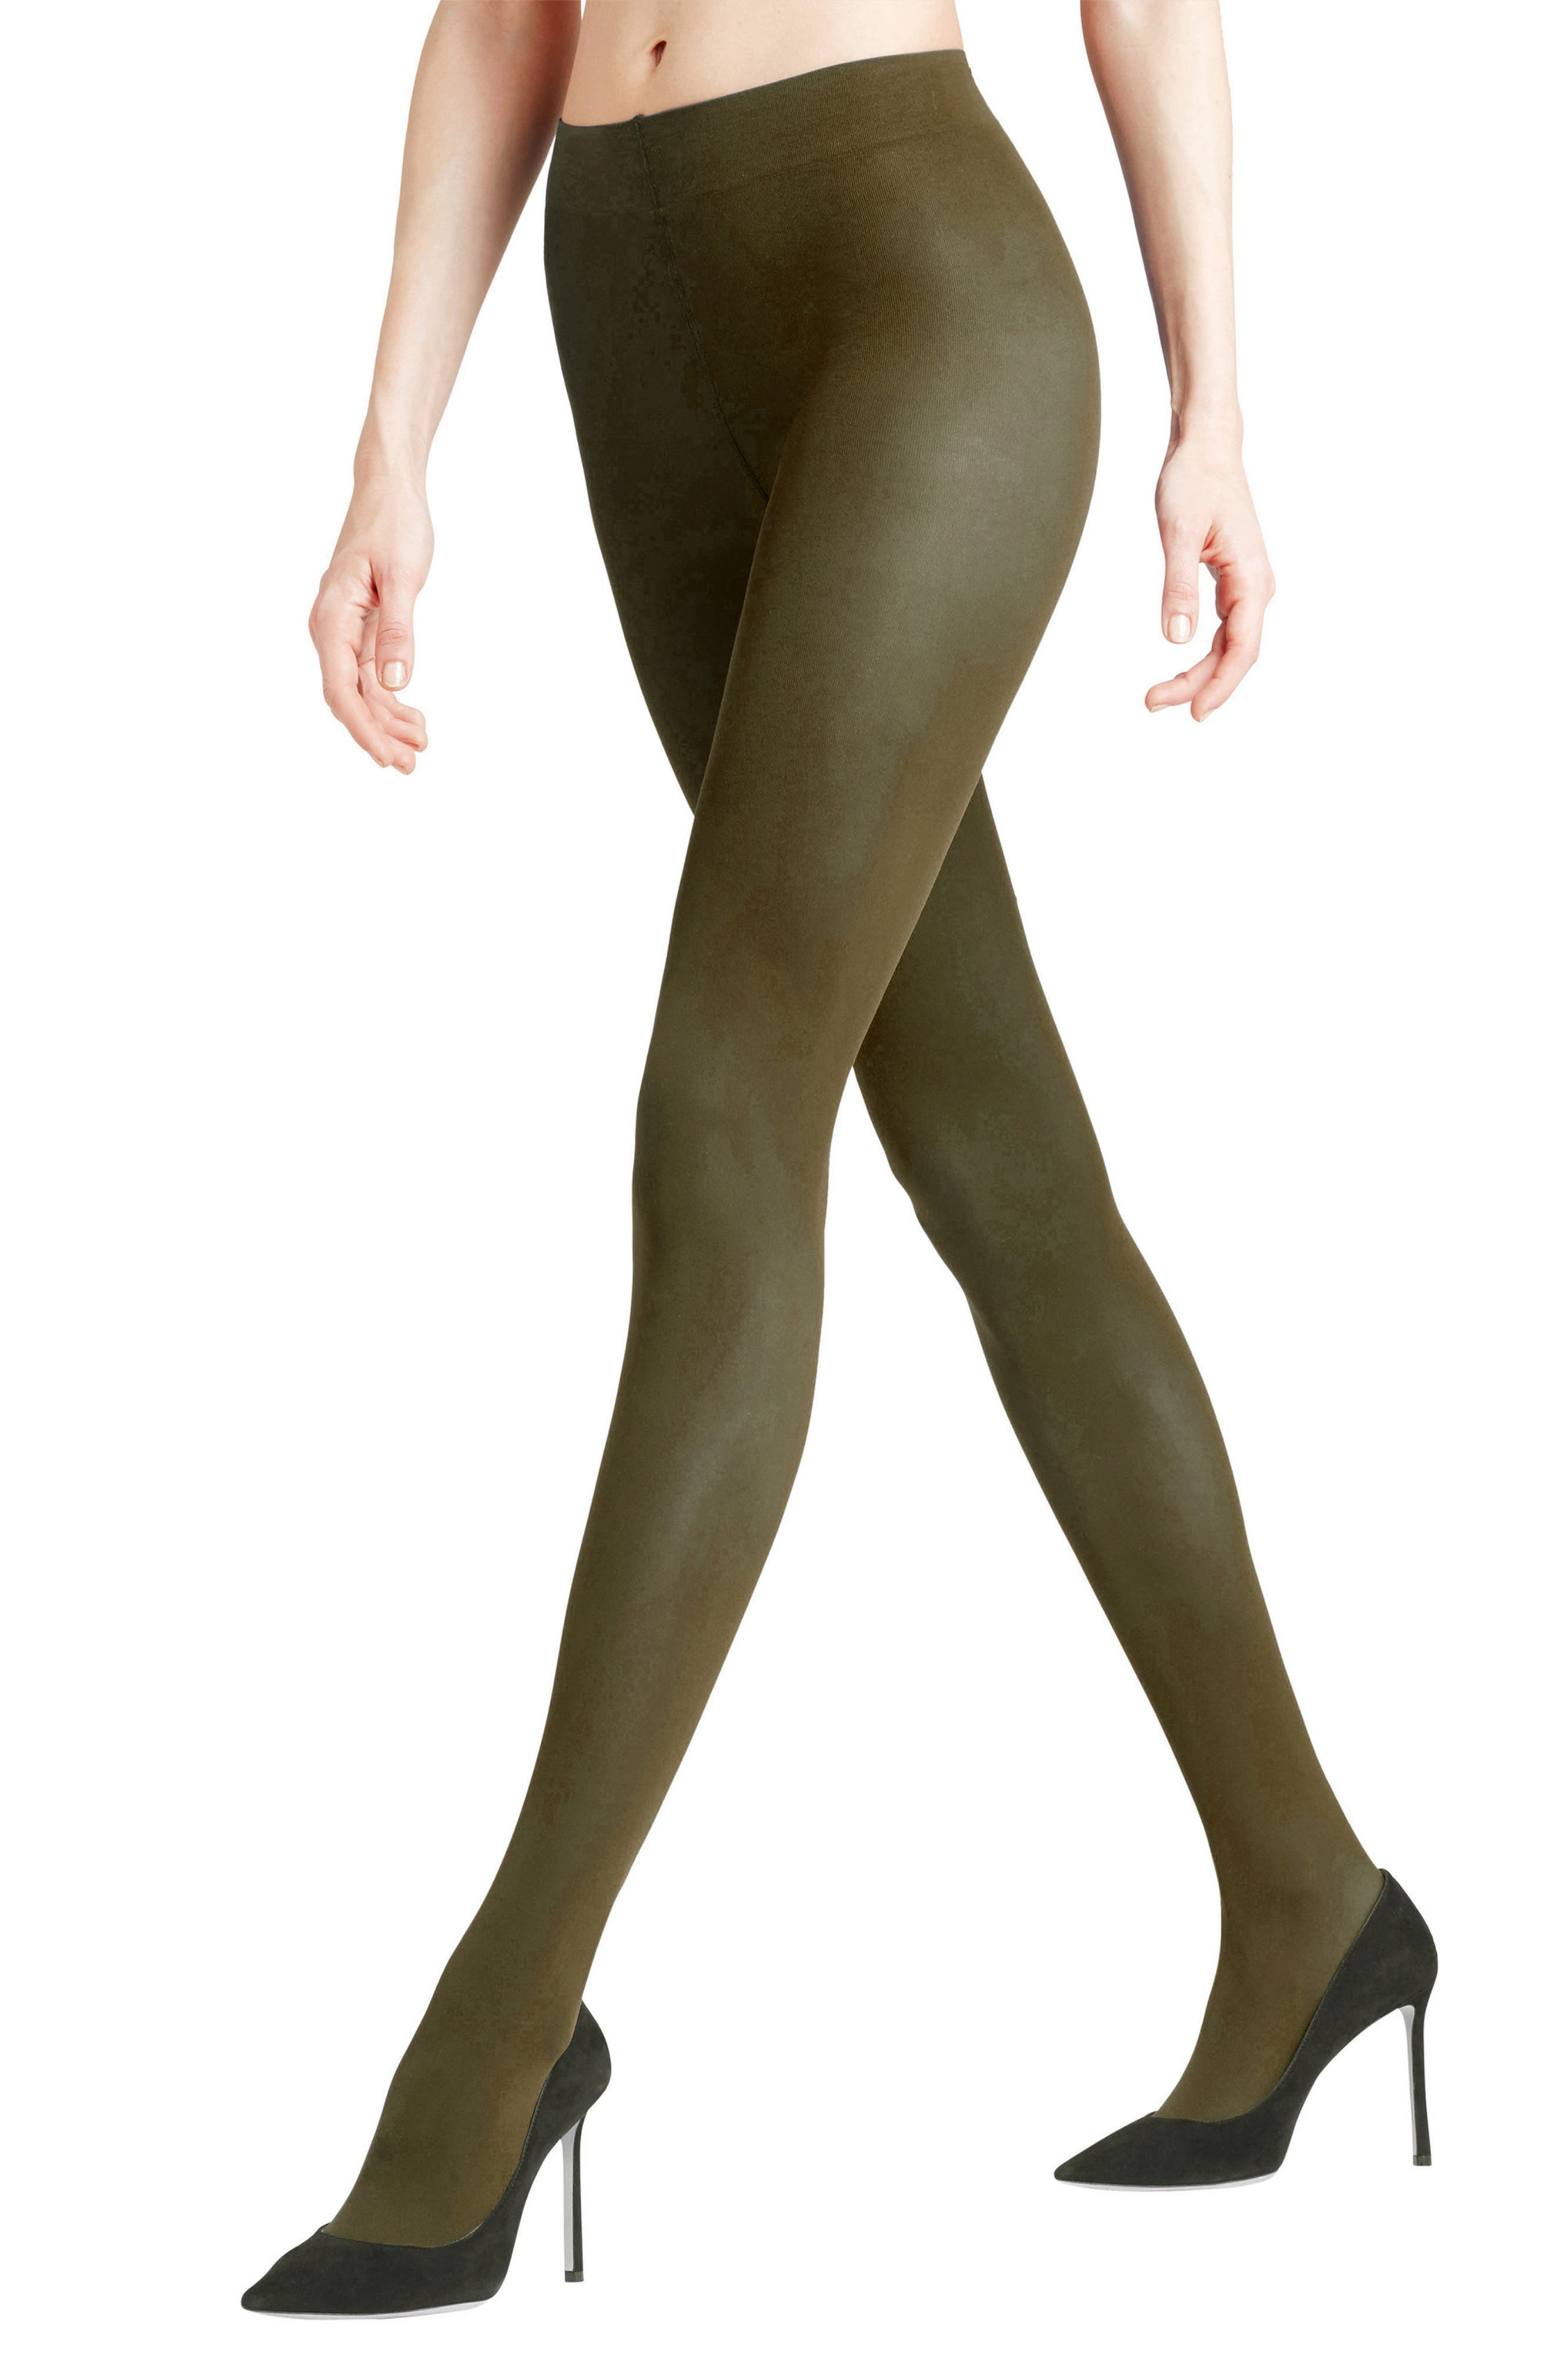 These versatile tights in a flattering matte finish are made with flat seams and a wide waistband for long-lasting comfort. Style Name: Falke Pure Matte 50 Opaque Tights. Style Number: 5210247. Available in stores.